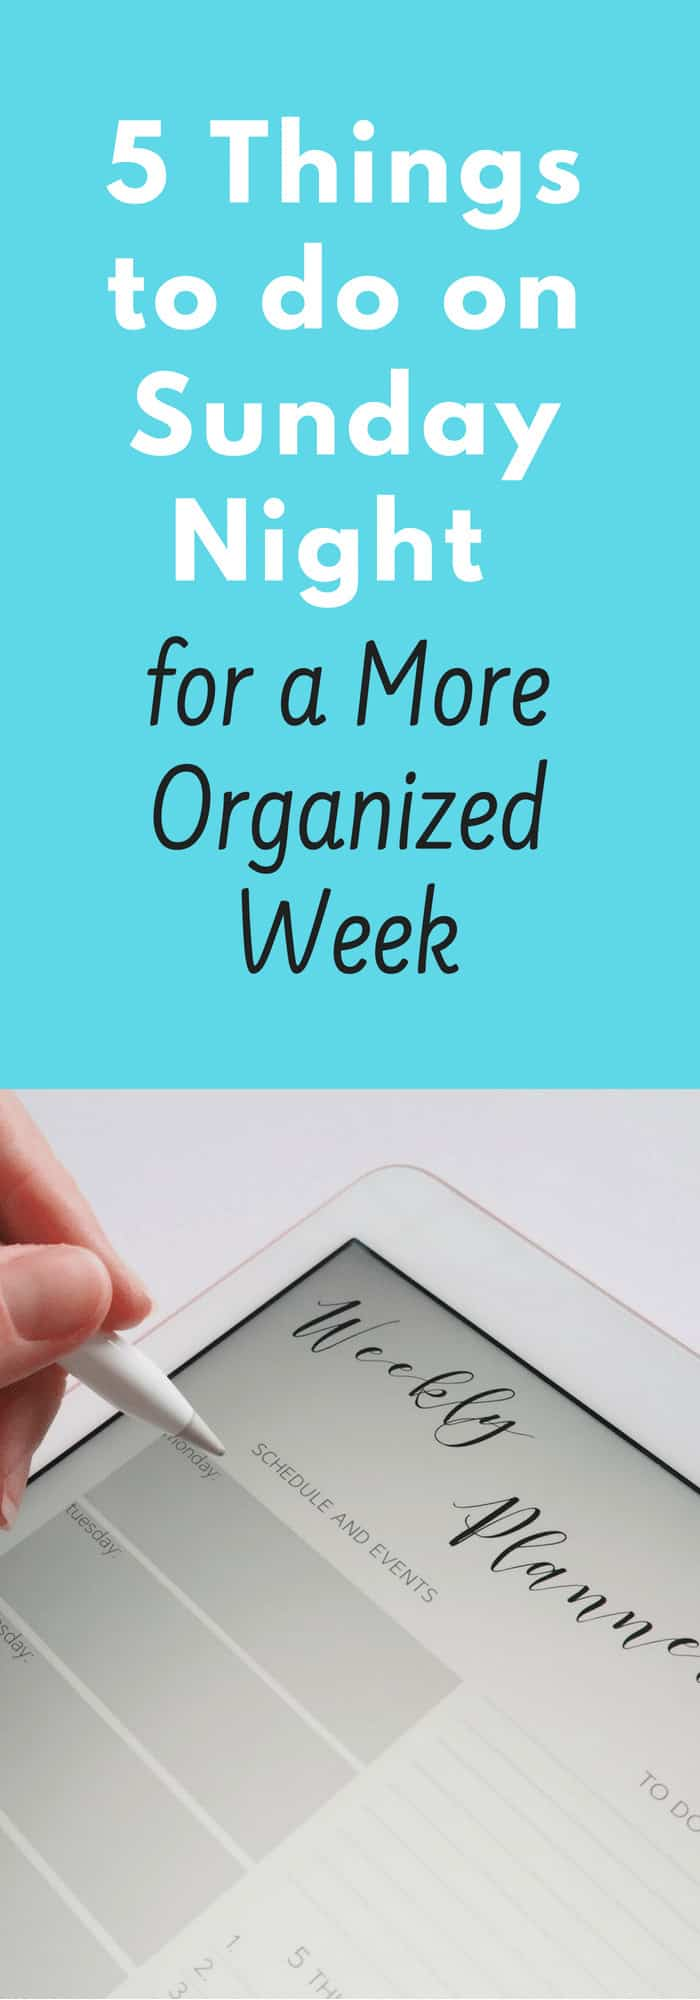 5 Things to Do On Sunday Night for a More Organized Week